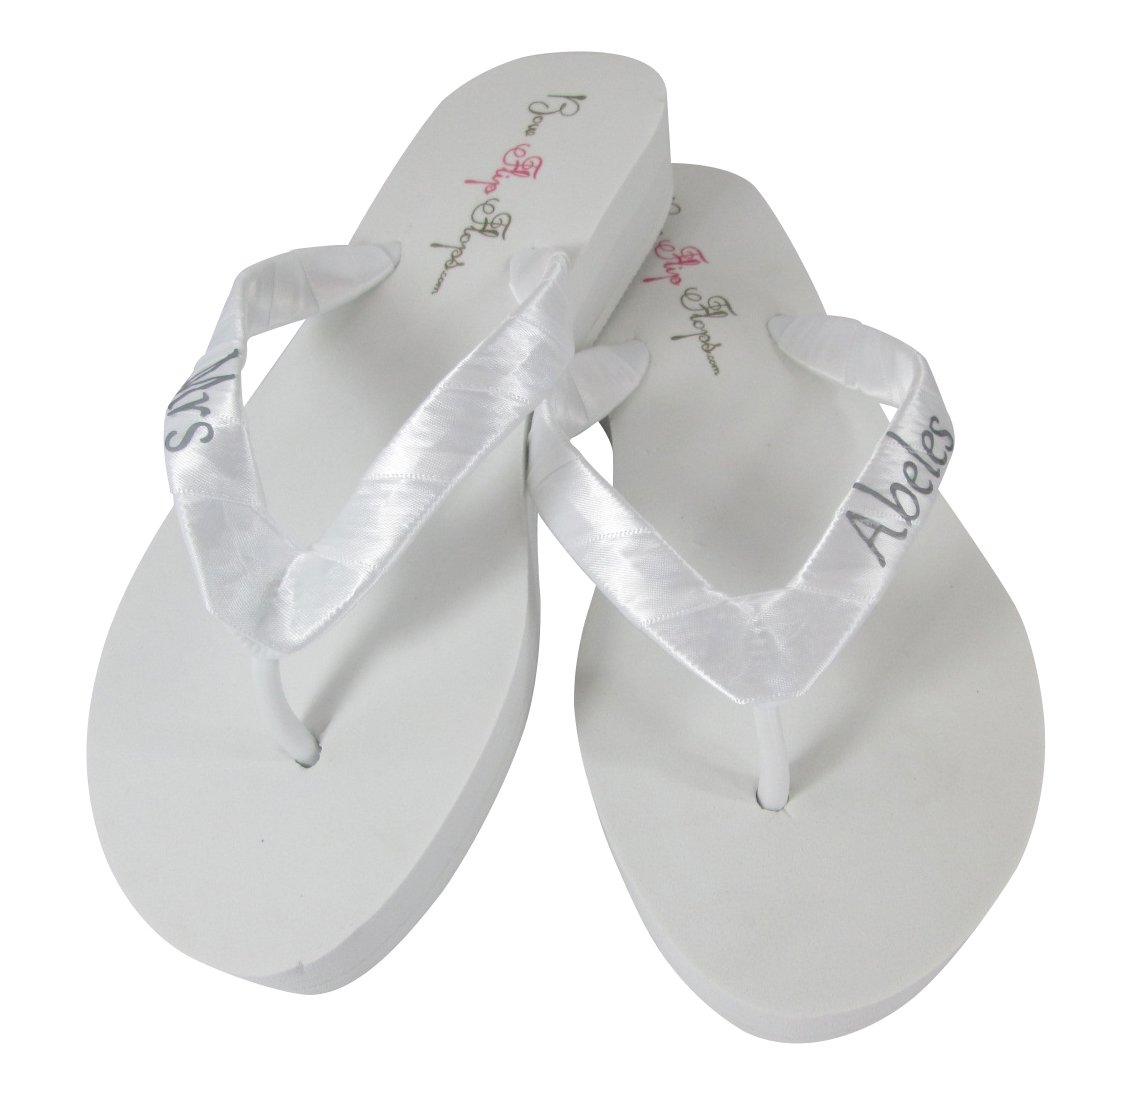 a42569ec5b2 Amazon.com  Cute Silver and White Personalized Flip Flops for Bride s  Wedding Reception Shoes  Handmade